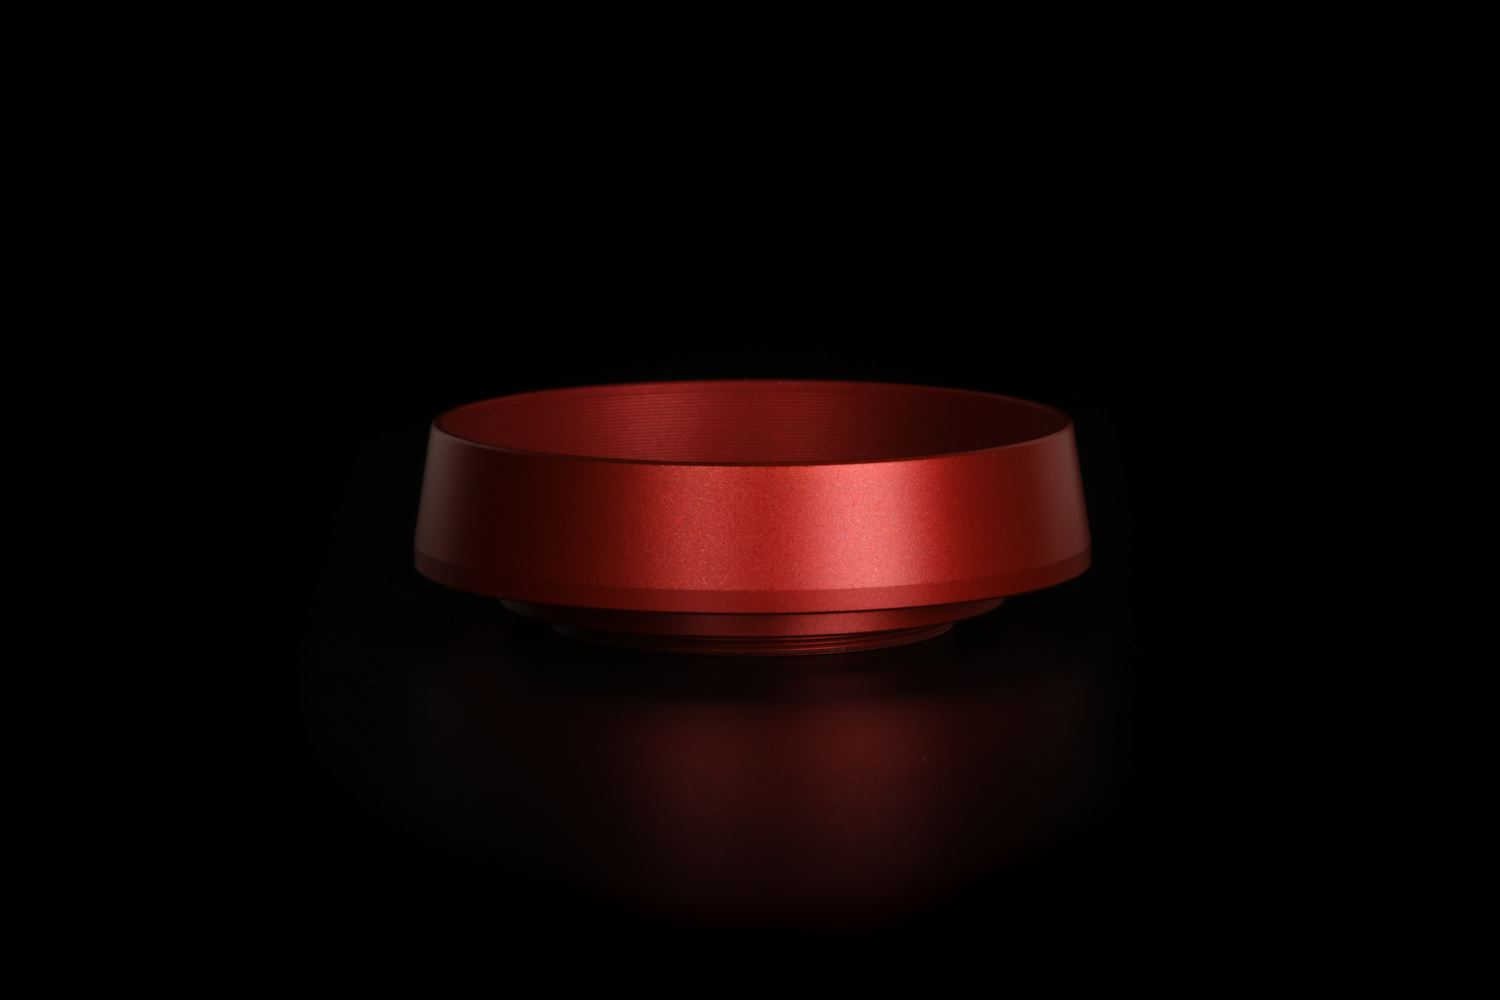 Picture of Red Ventilated Lens Hood made for Leica E39 lenses